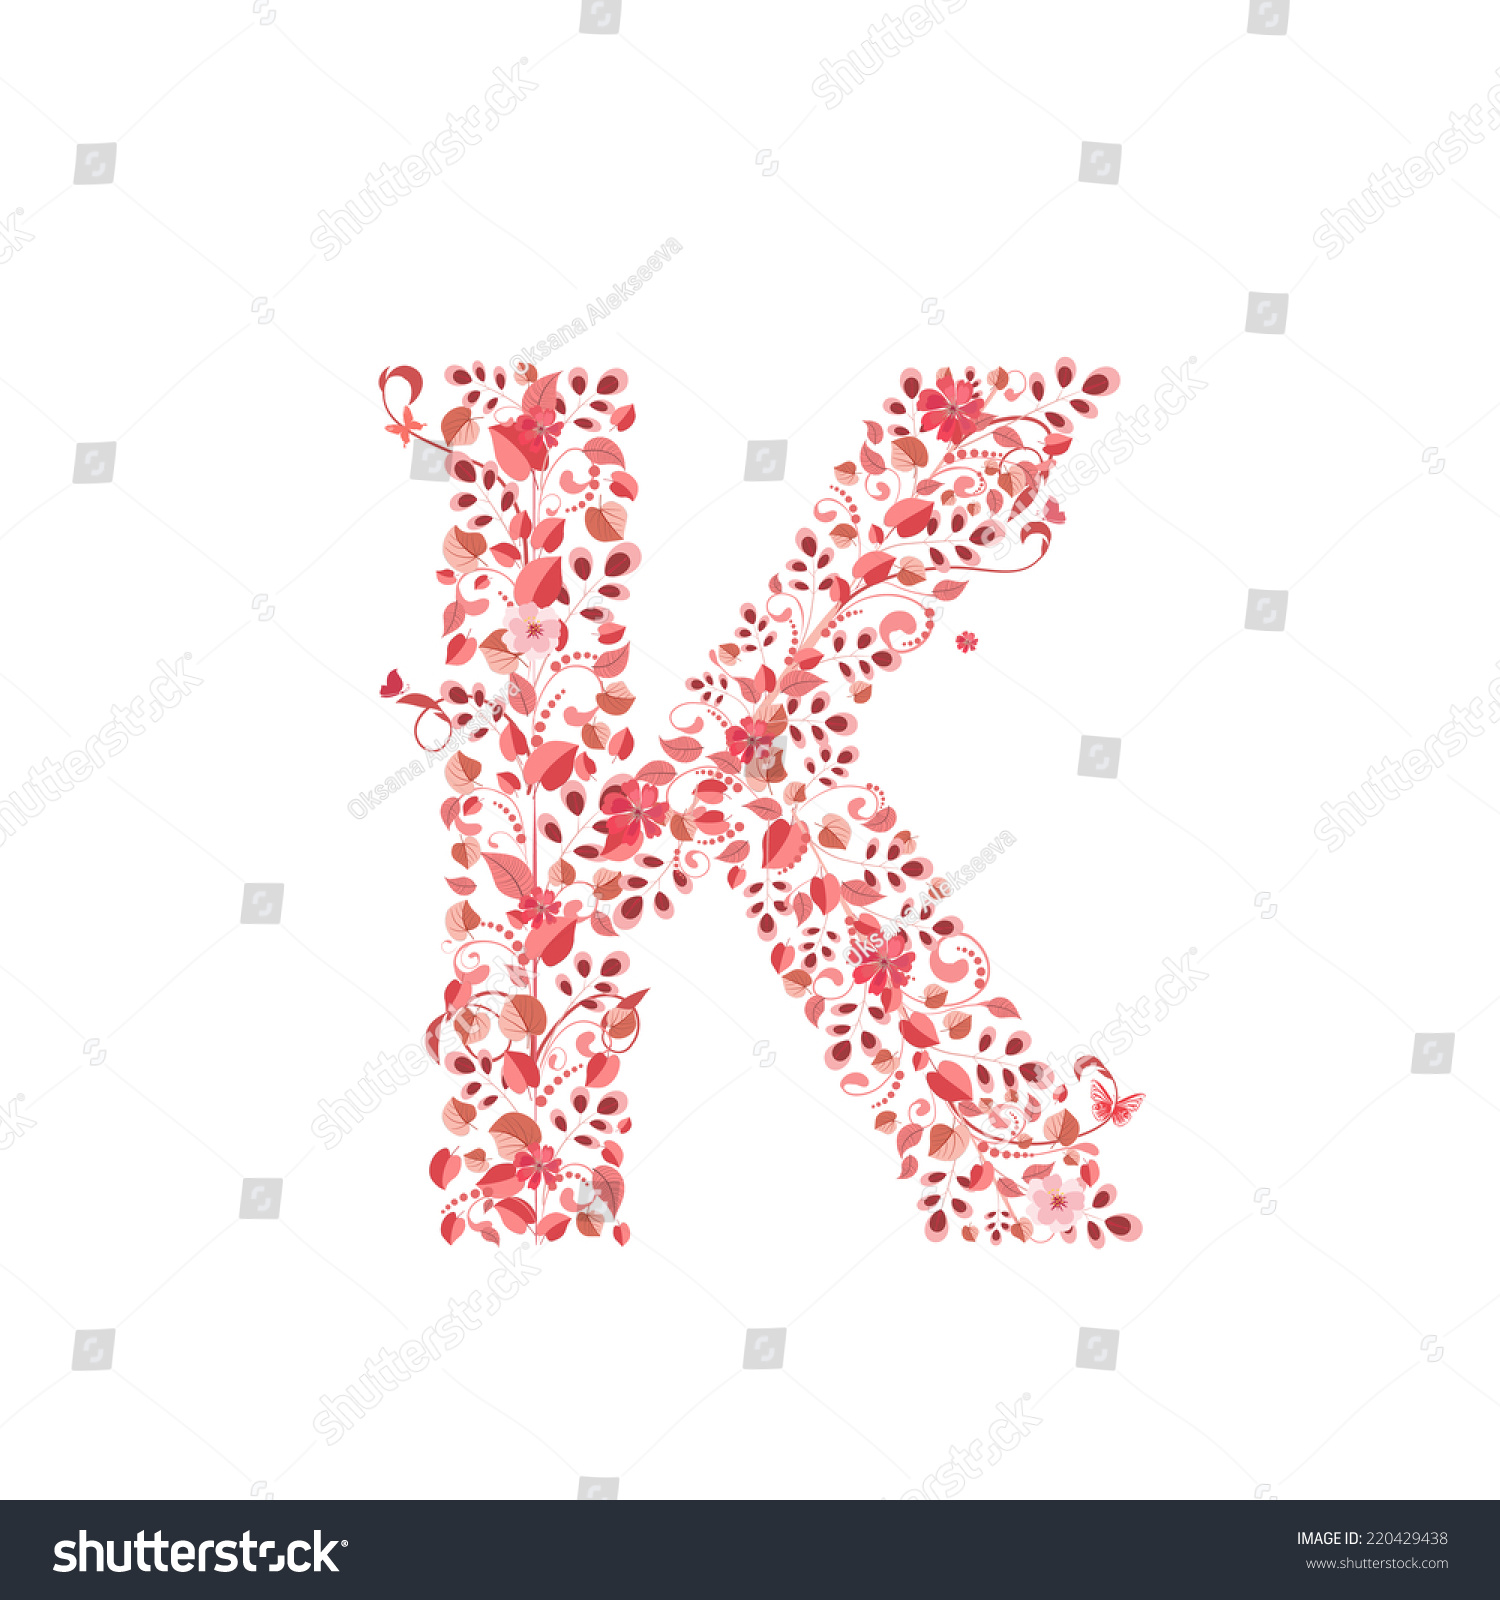 Romantic Floral Letter K Stock Vector (Royalty Free) 220429438 ...